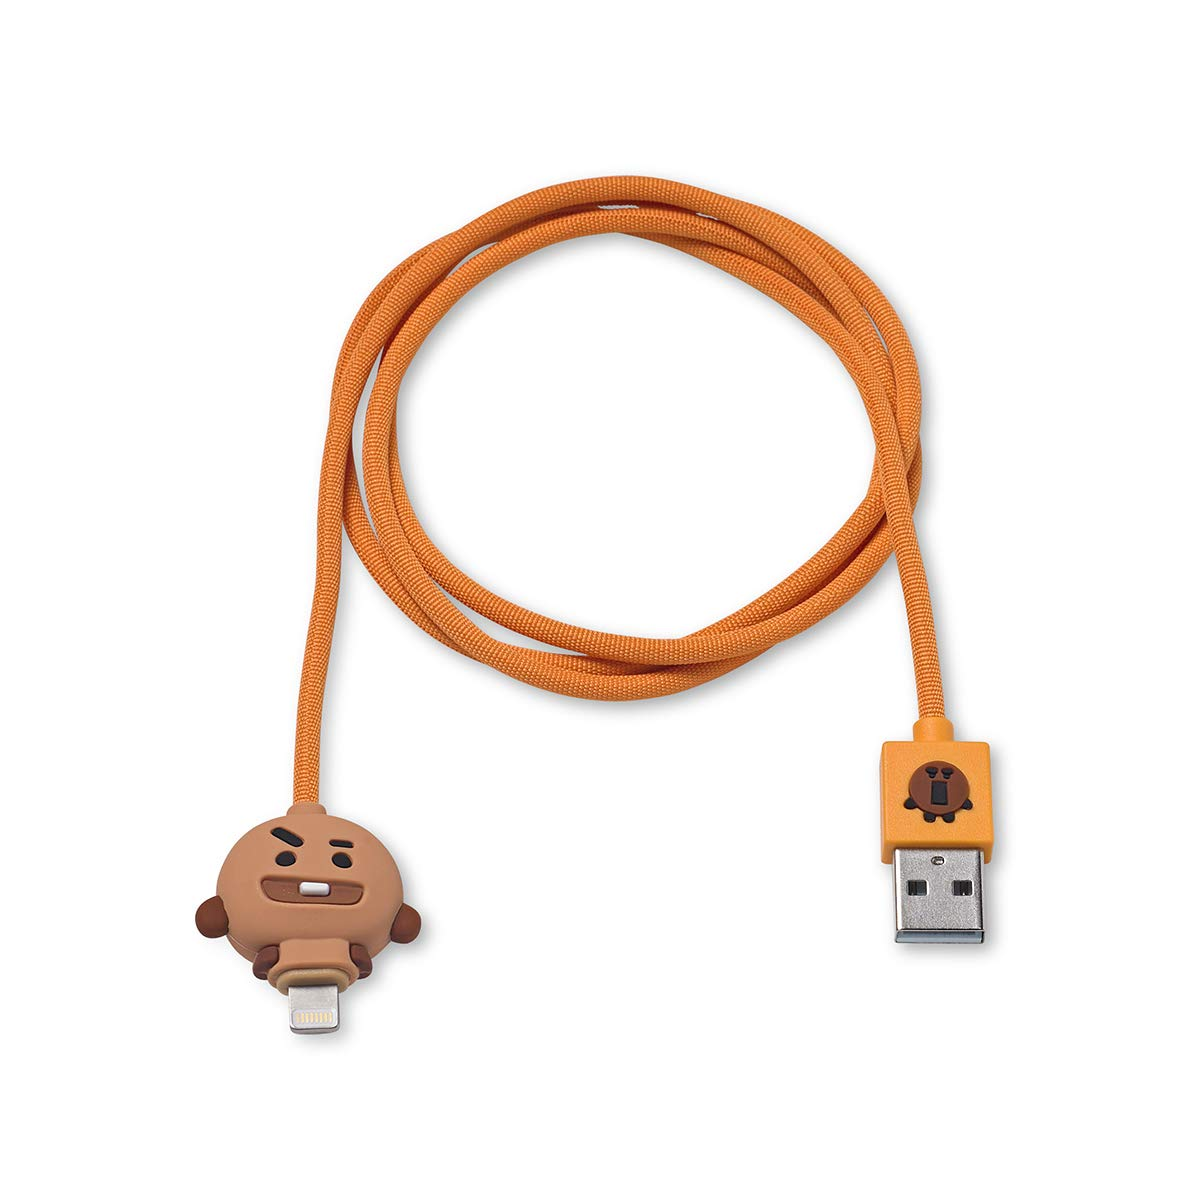 BT21 Official Merchandise by Line Friends - SHOOKY Charger Cable Compatible for iPhone, Brown